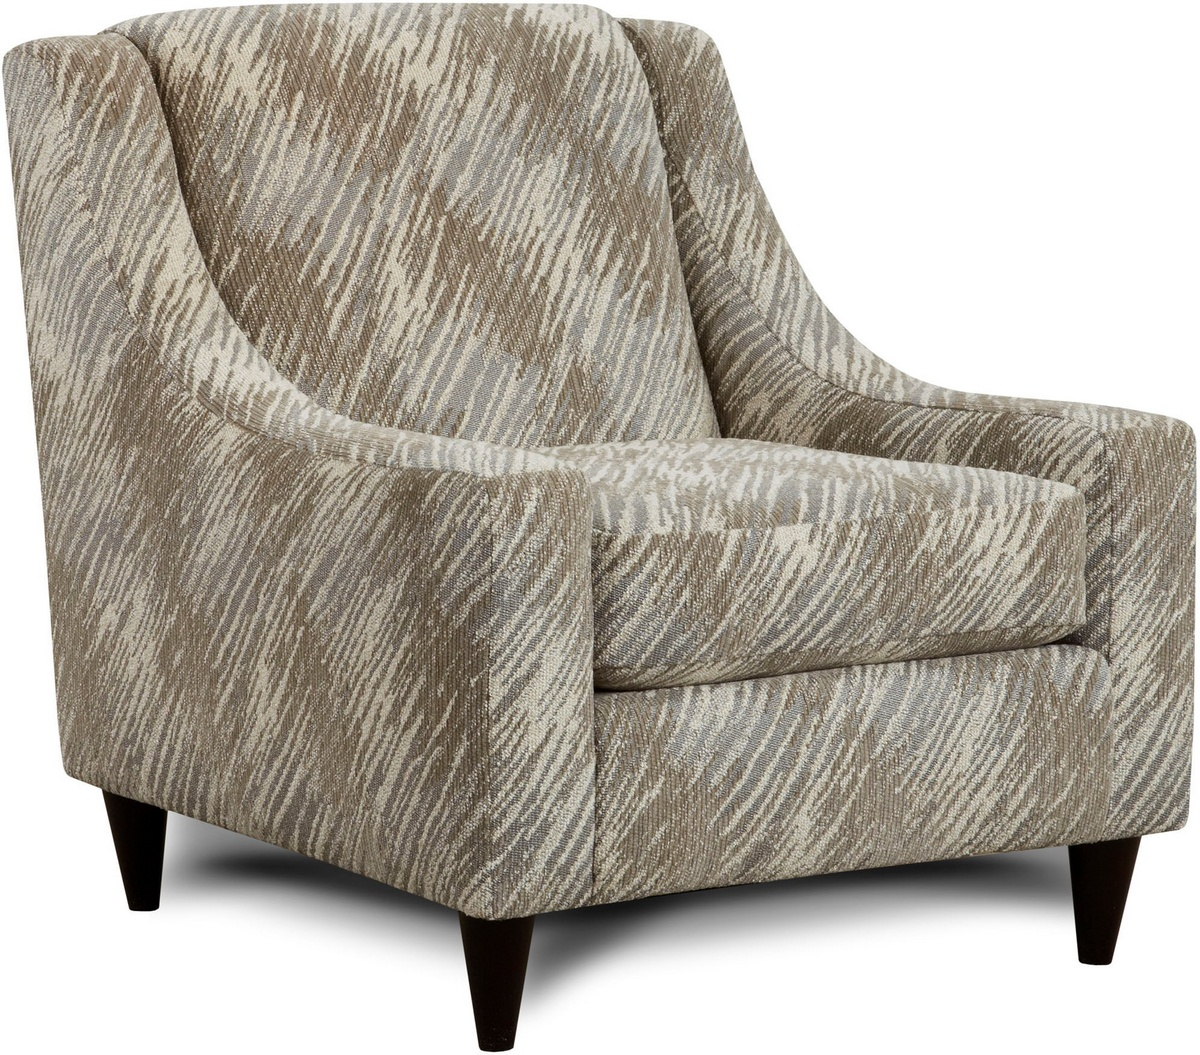 Chelsea Home Candytuft Accent Chair Stone Stone